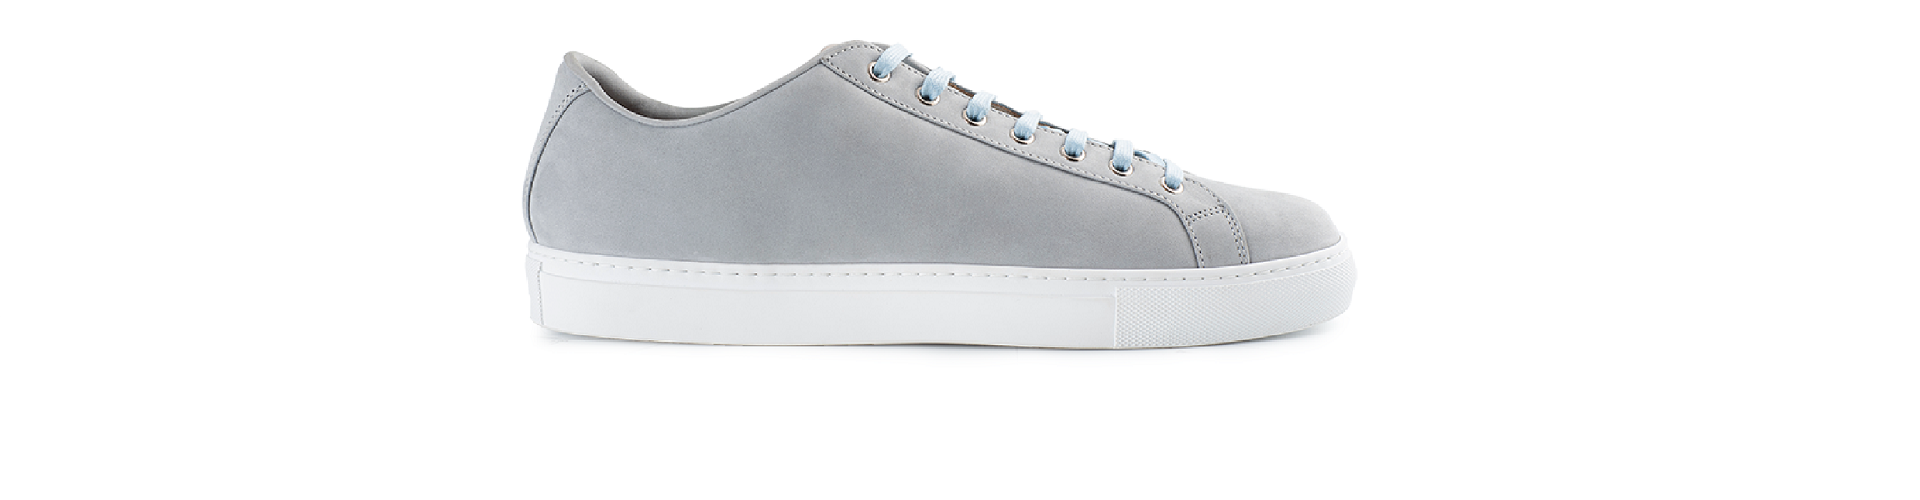 8011 Low Top - Grey Nubuck